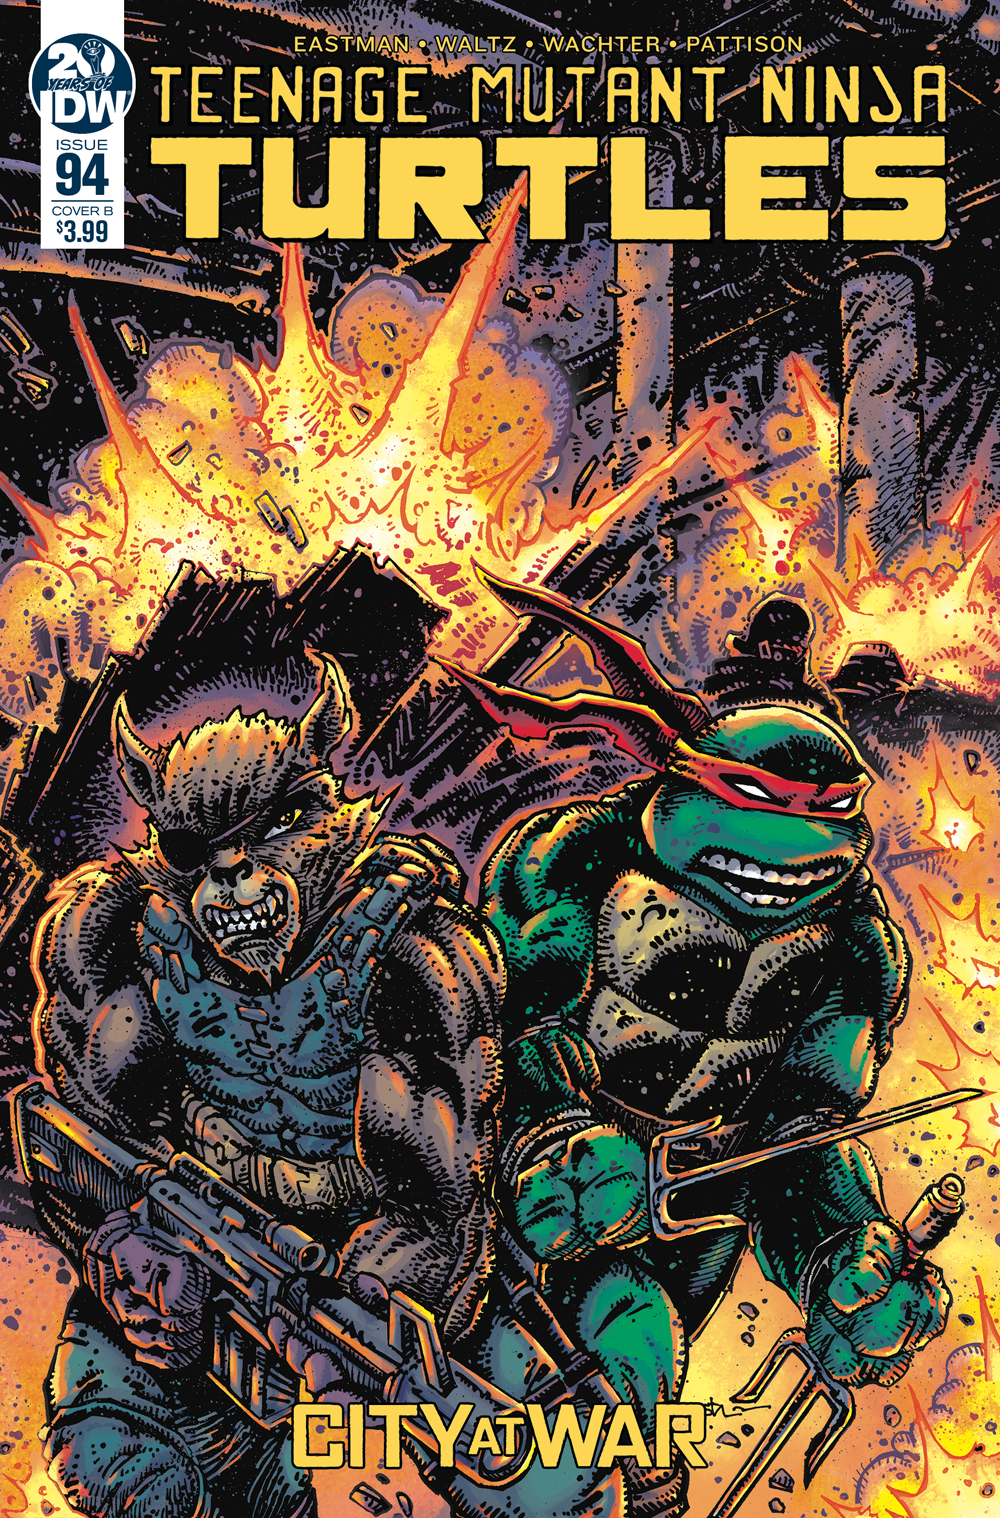 TMNT ONGOING #94 CVR B EASTMAN